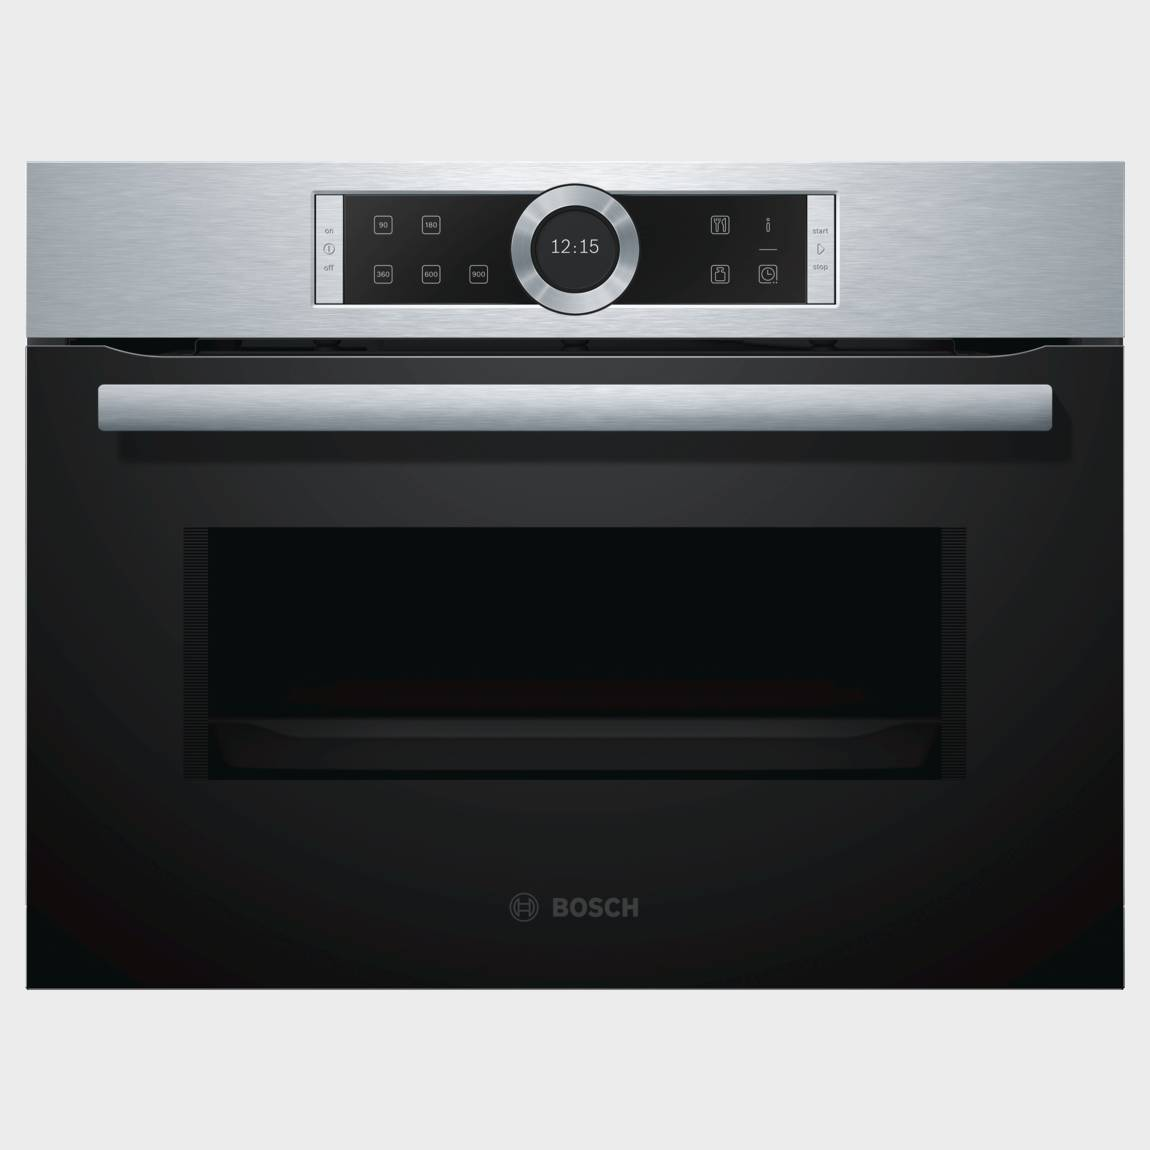 Microondas integrable bosch cfa634gs1 negro inox for Microondas integrable